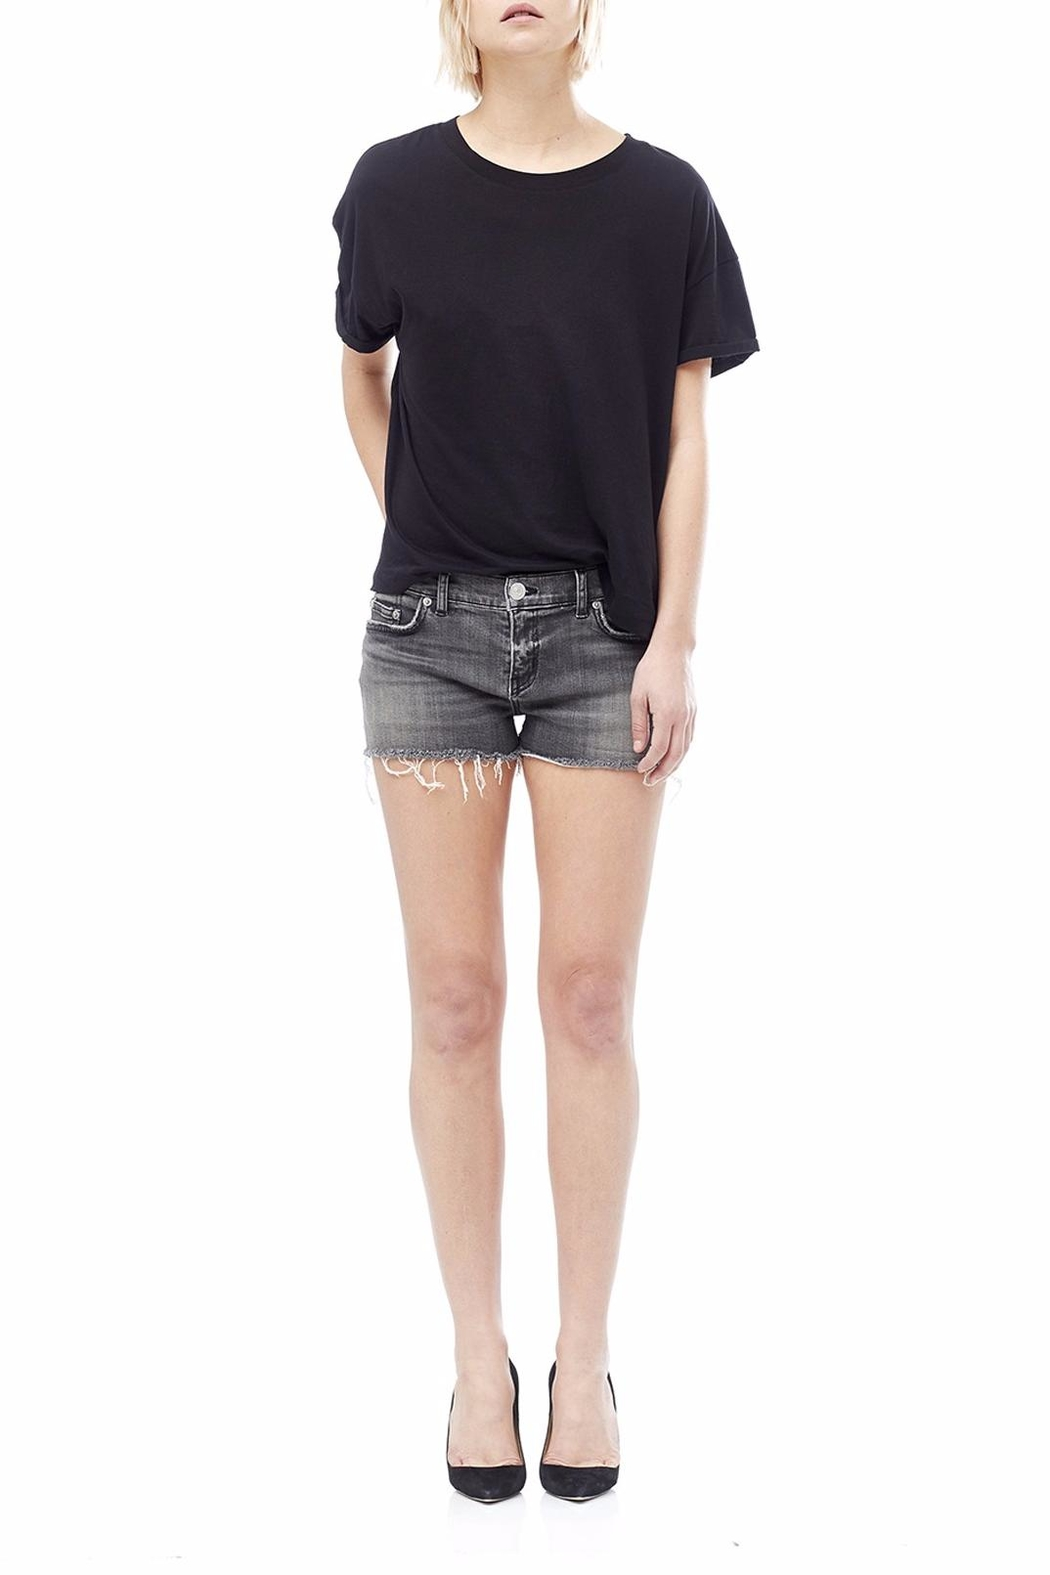 Hudson Jeans Kenzie Cut Off Shorts - Front Cropped Image